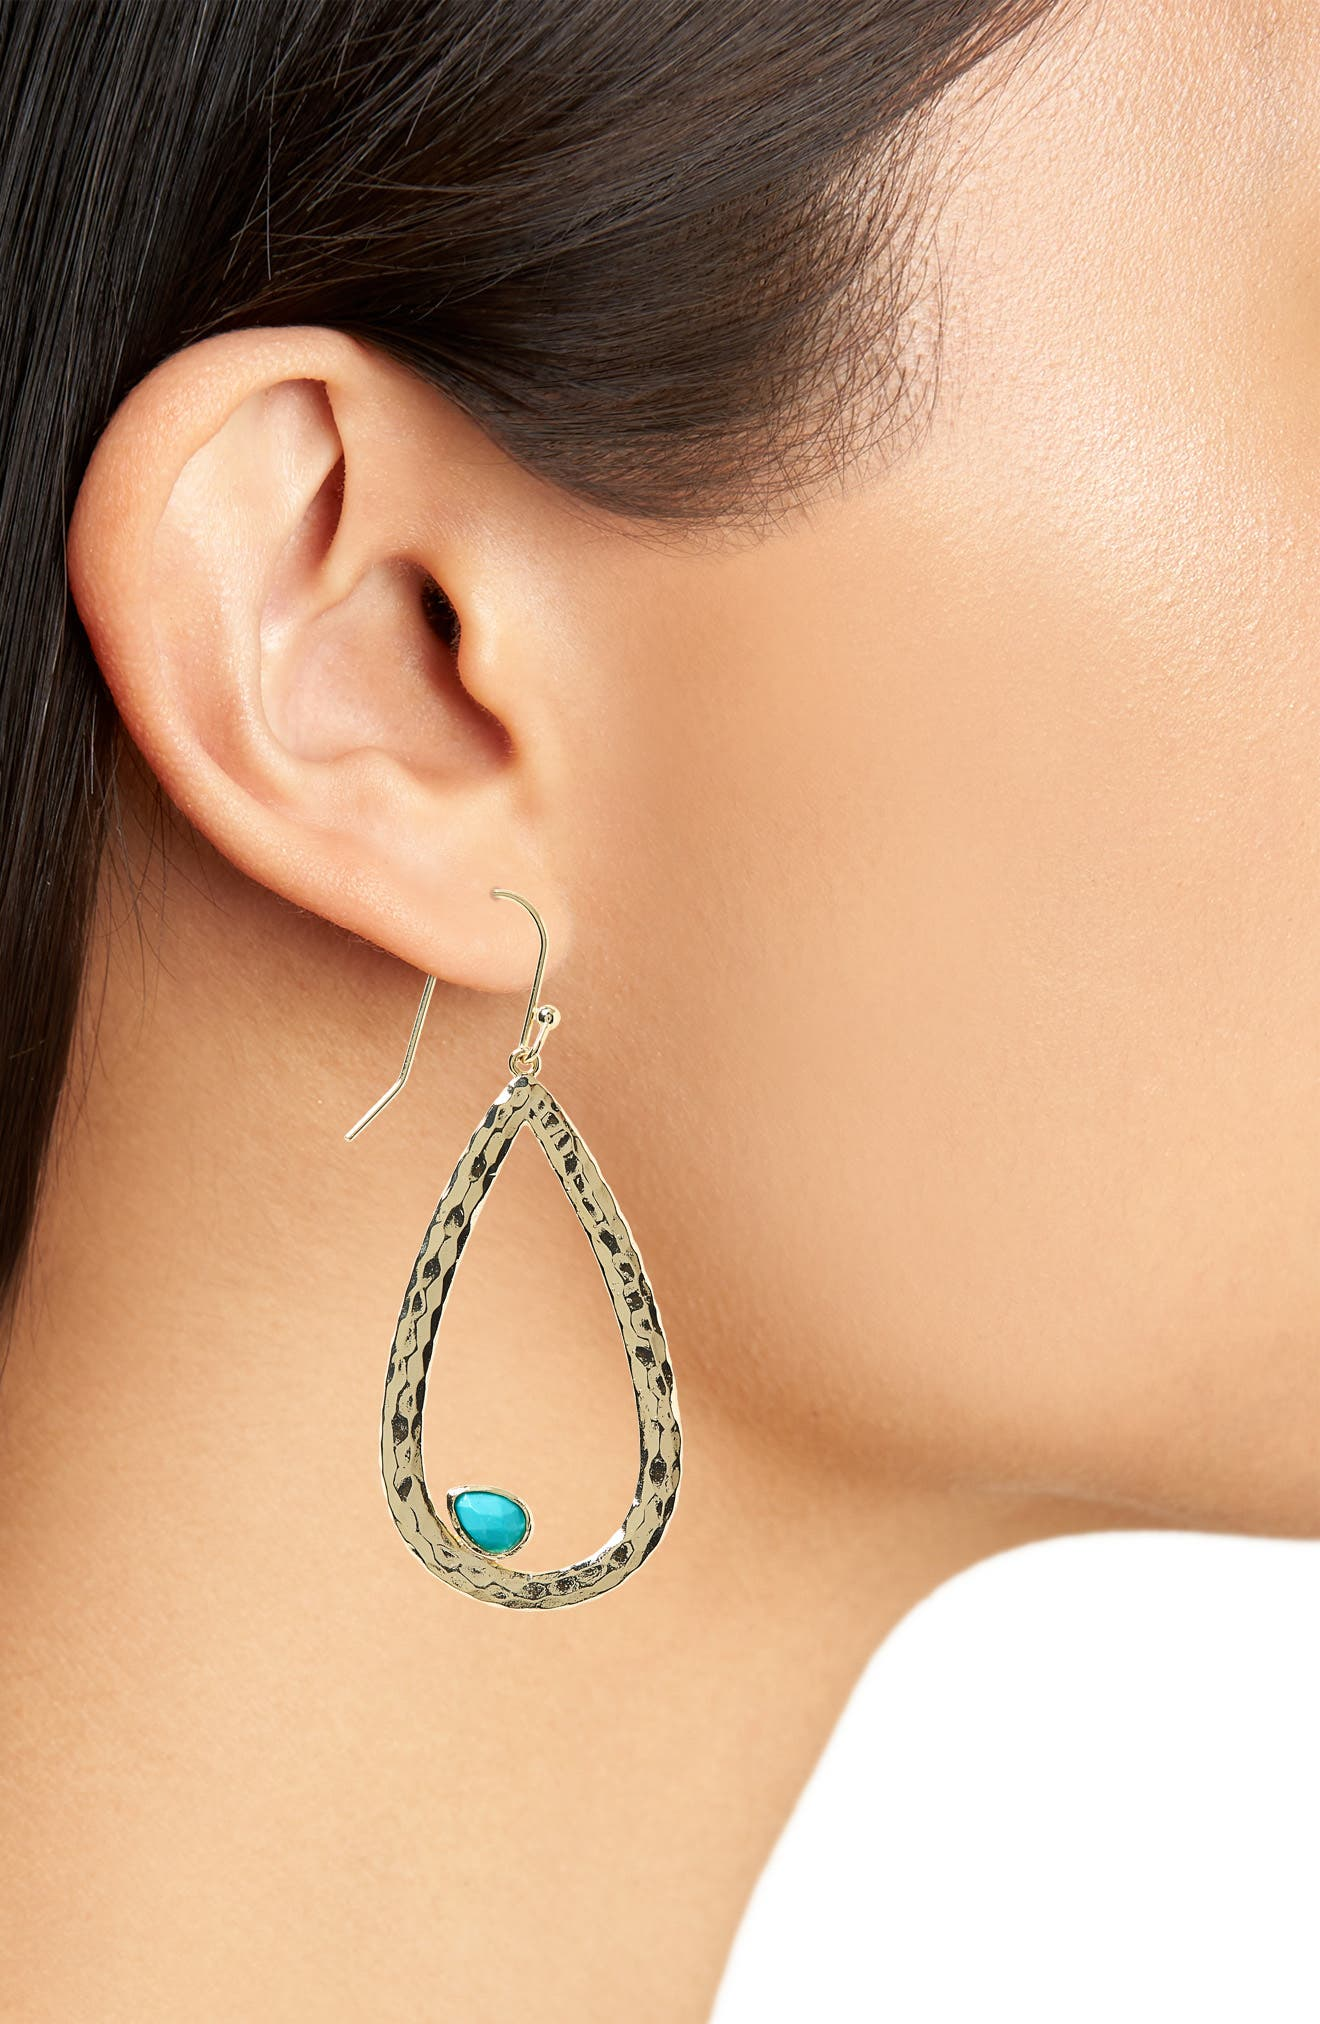 Sweet Teardrop Earrings,                             Alternate thumbnail 2, color,                             Gold Turquoise/ White Cz